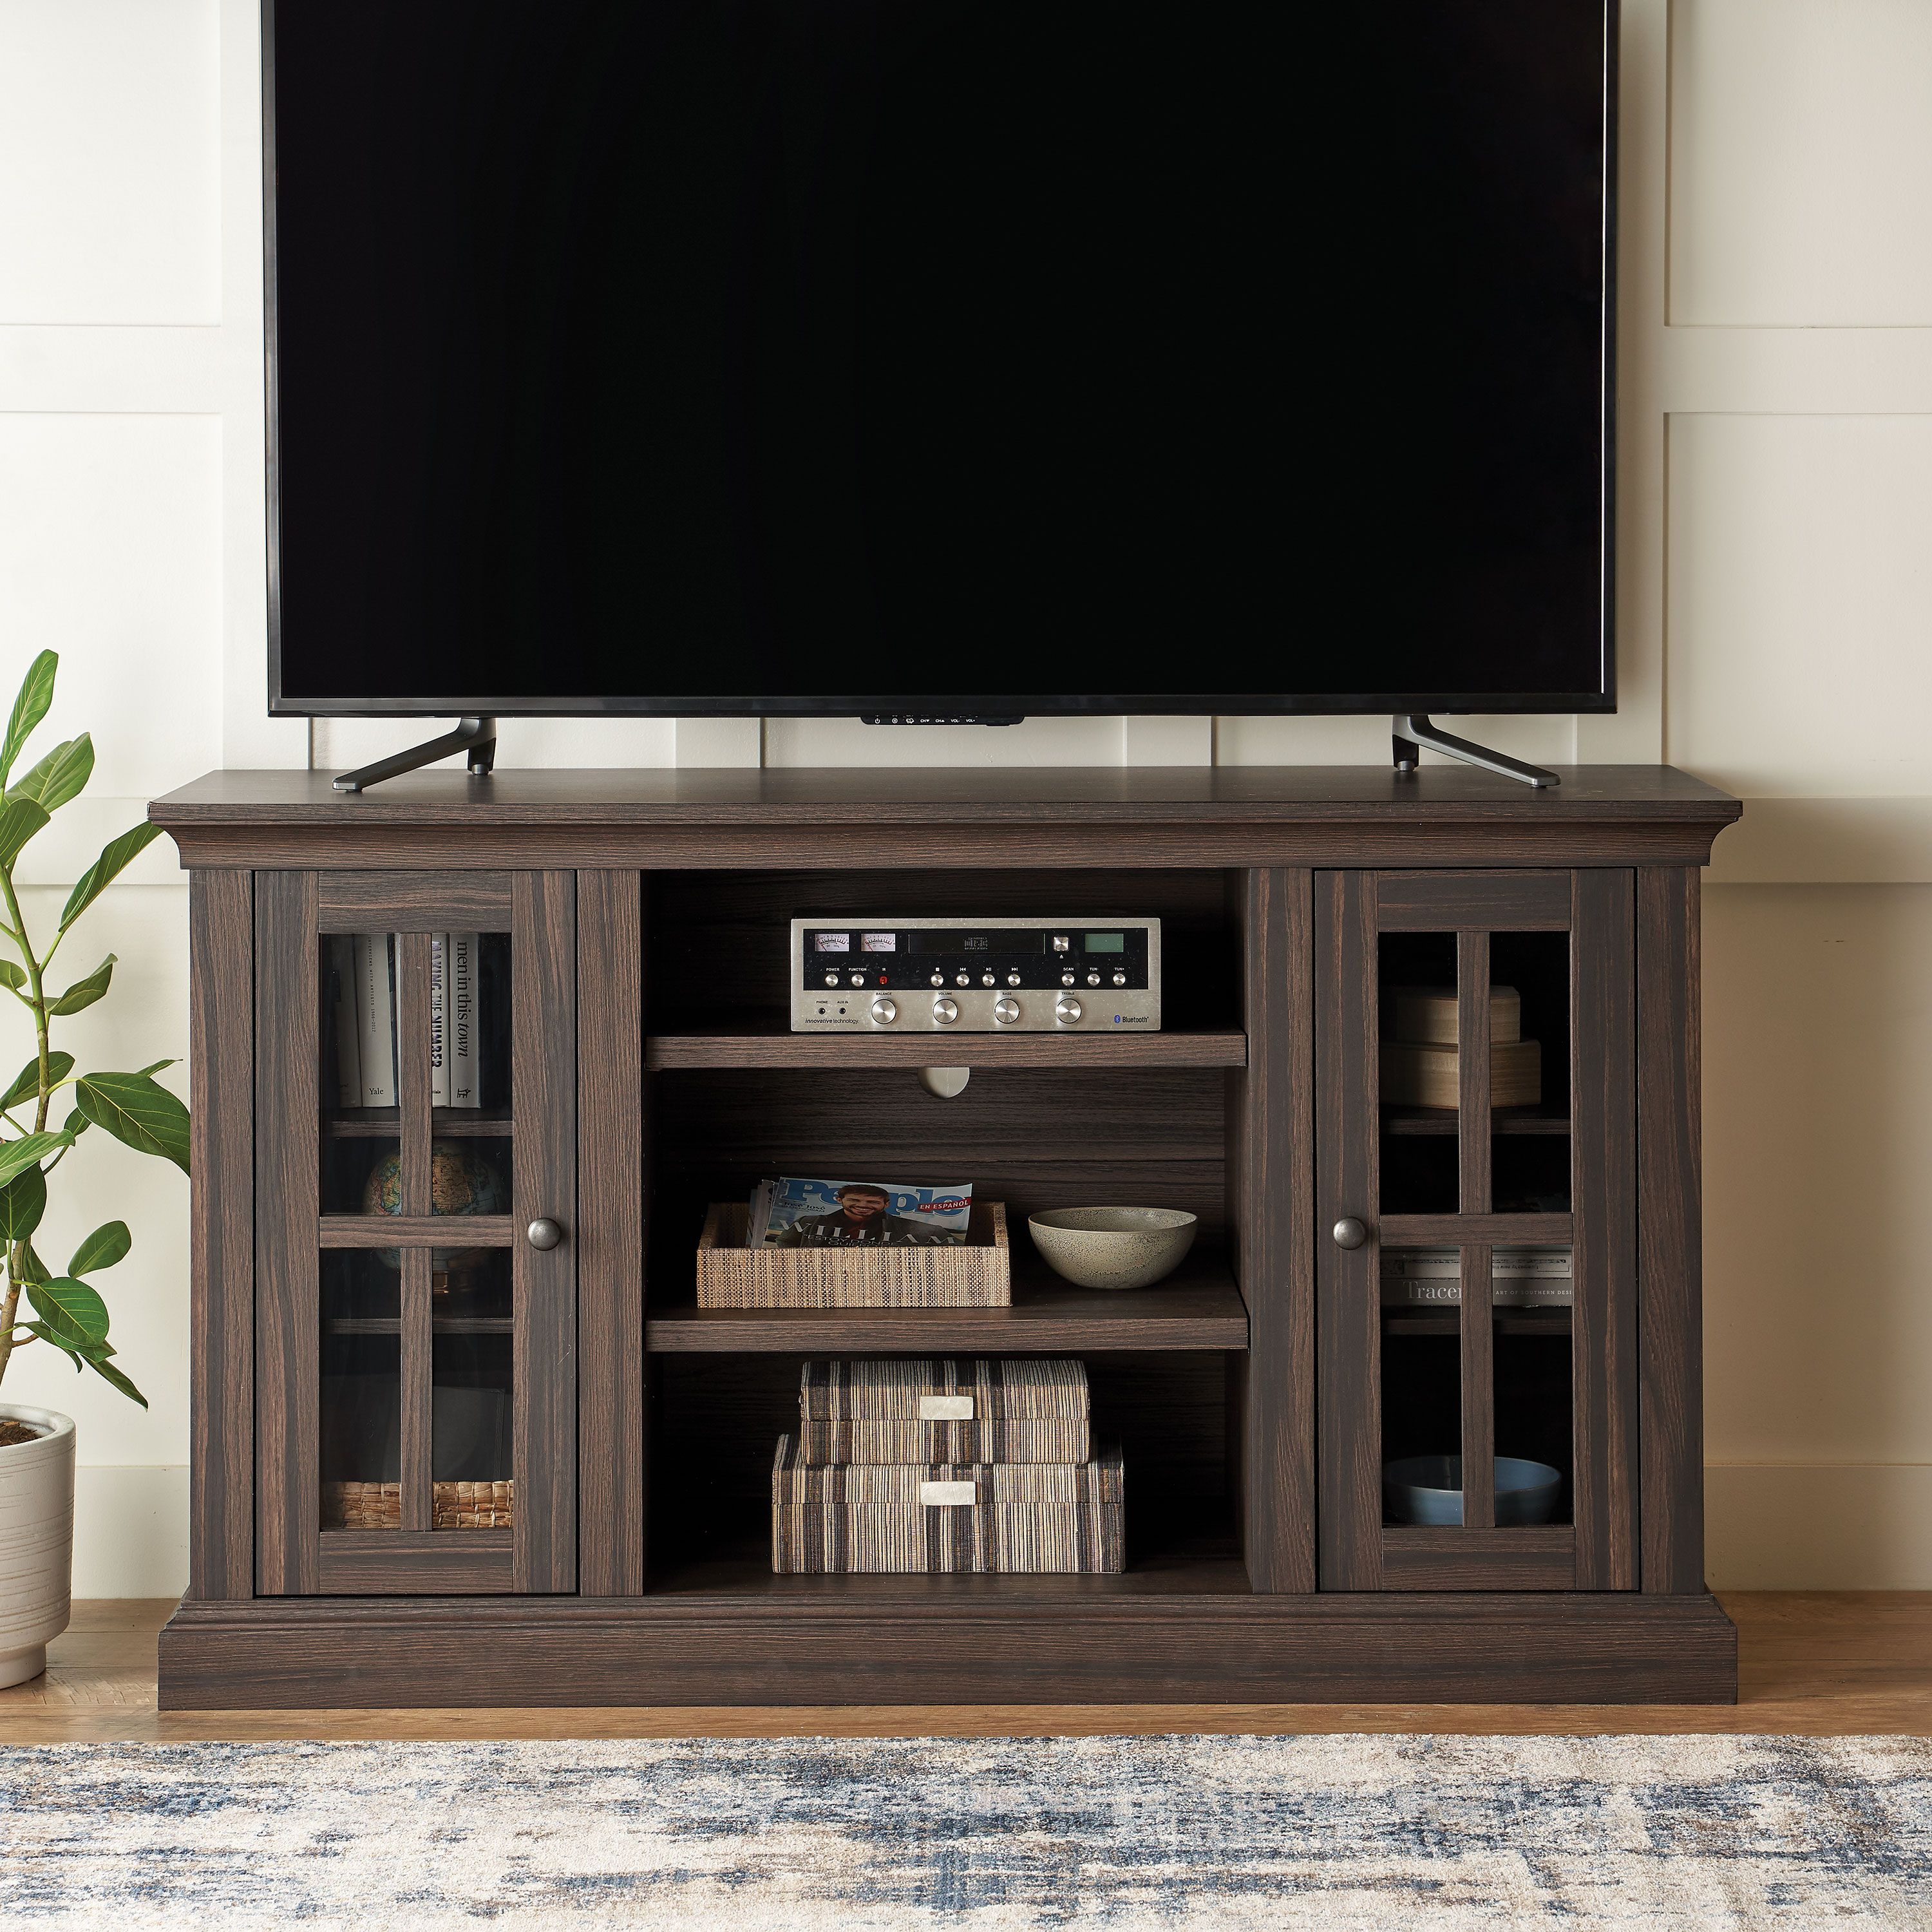 87a52b7bf9fe584a6525e143d3dd3e86 - Better Homes And Gardens Tv Stand Parker